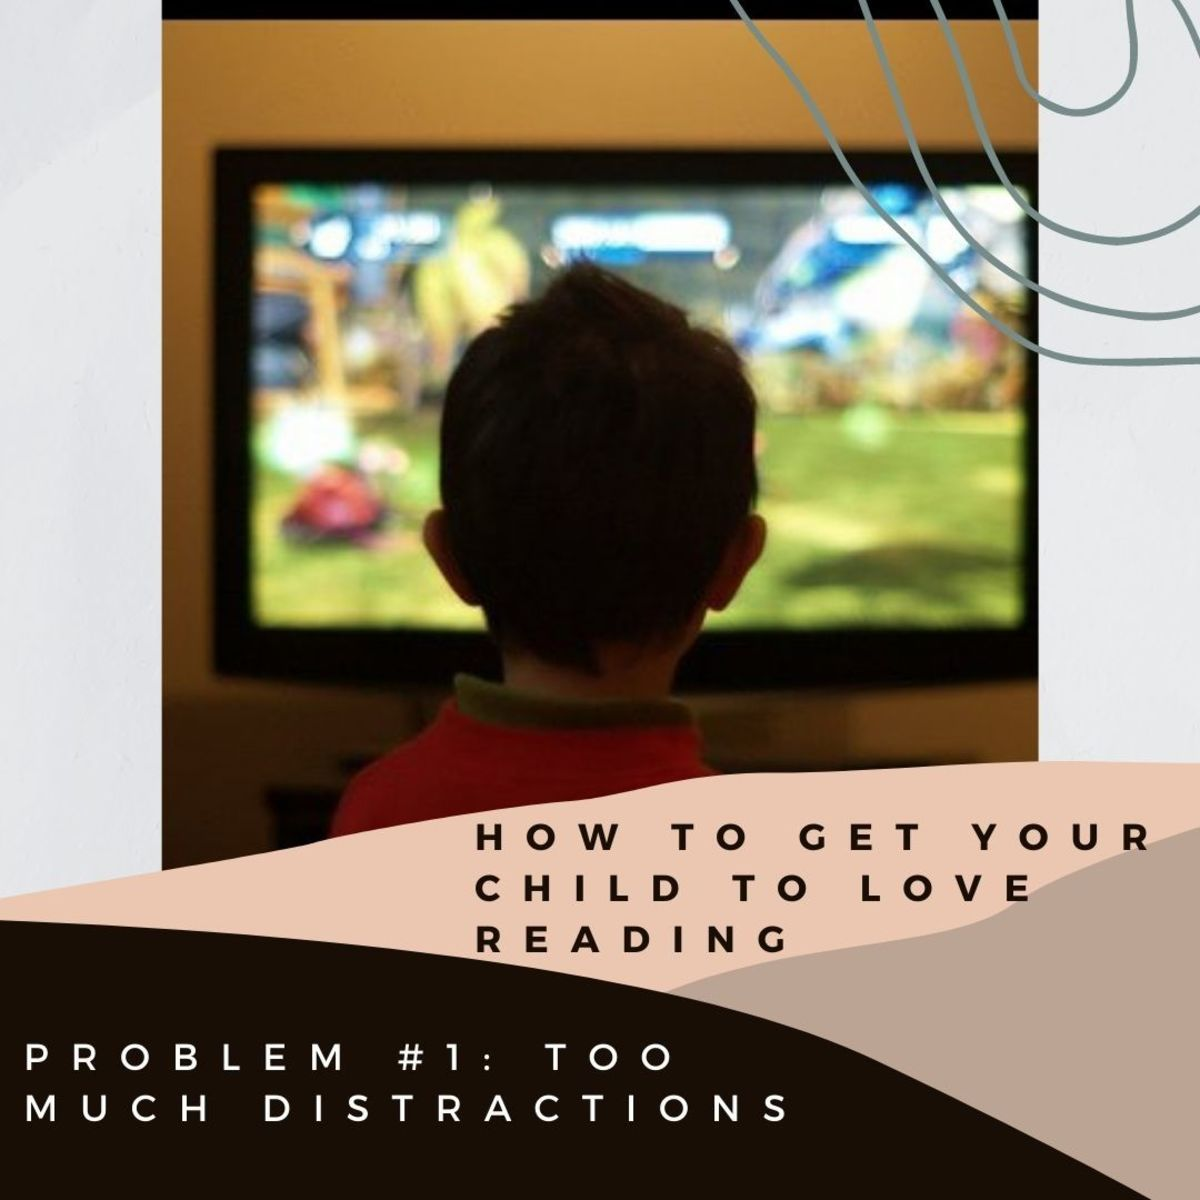 Kids can be distracted by so many things. So take it easy if you want to encourage your child to read for pleasure